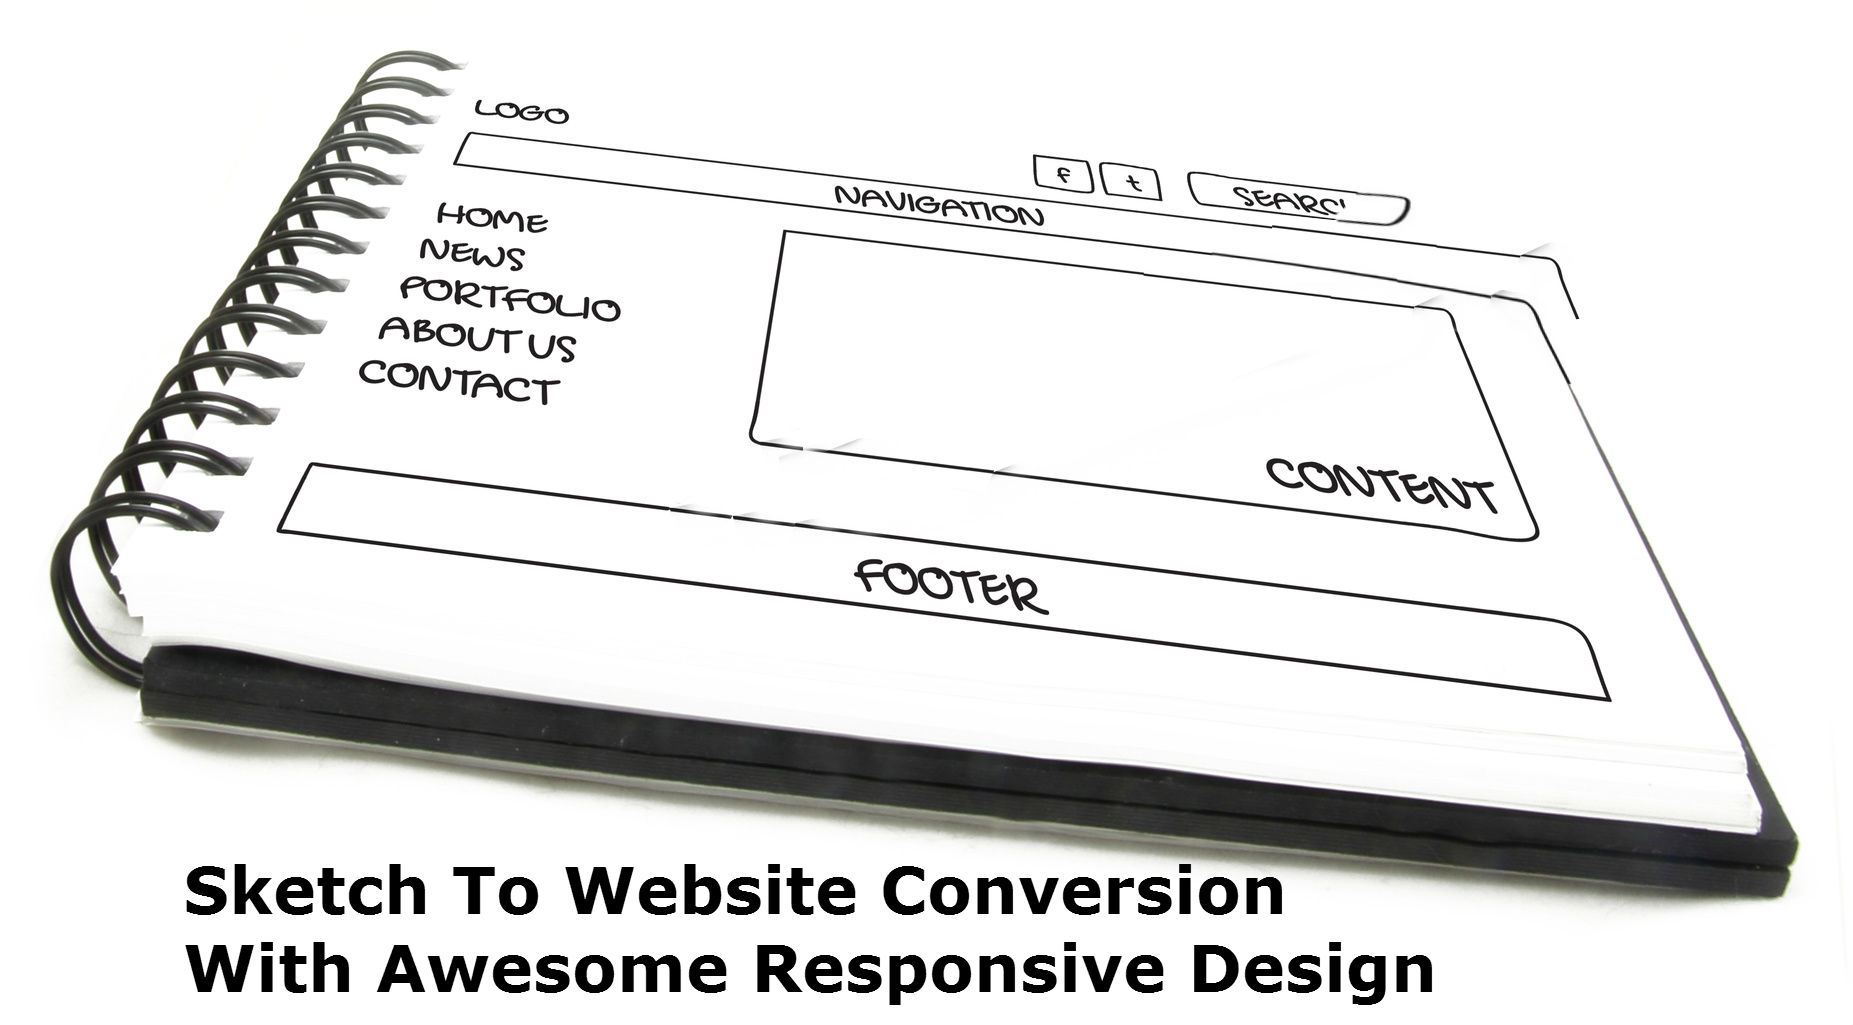 Sketch To Website Conversion